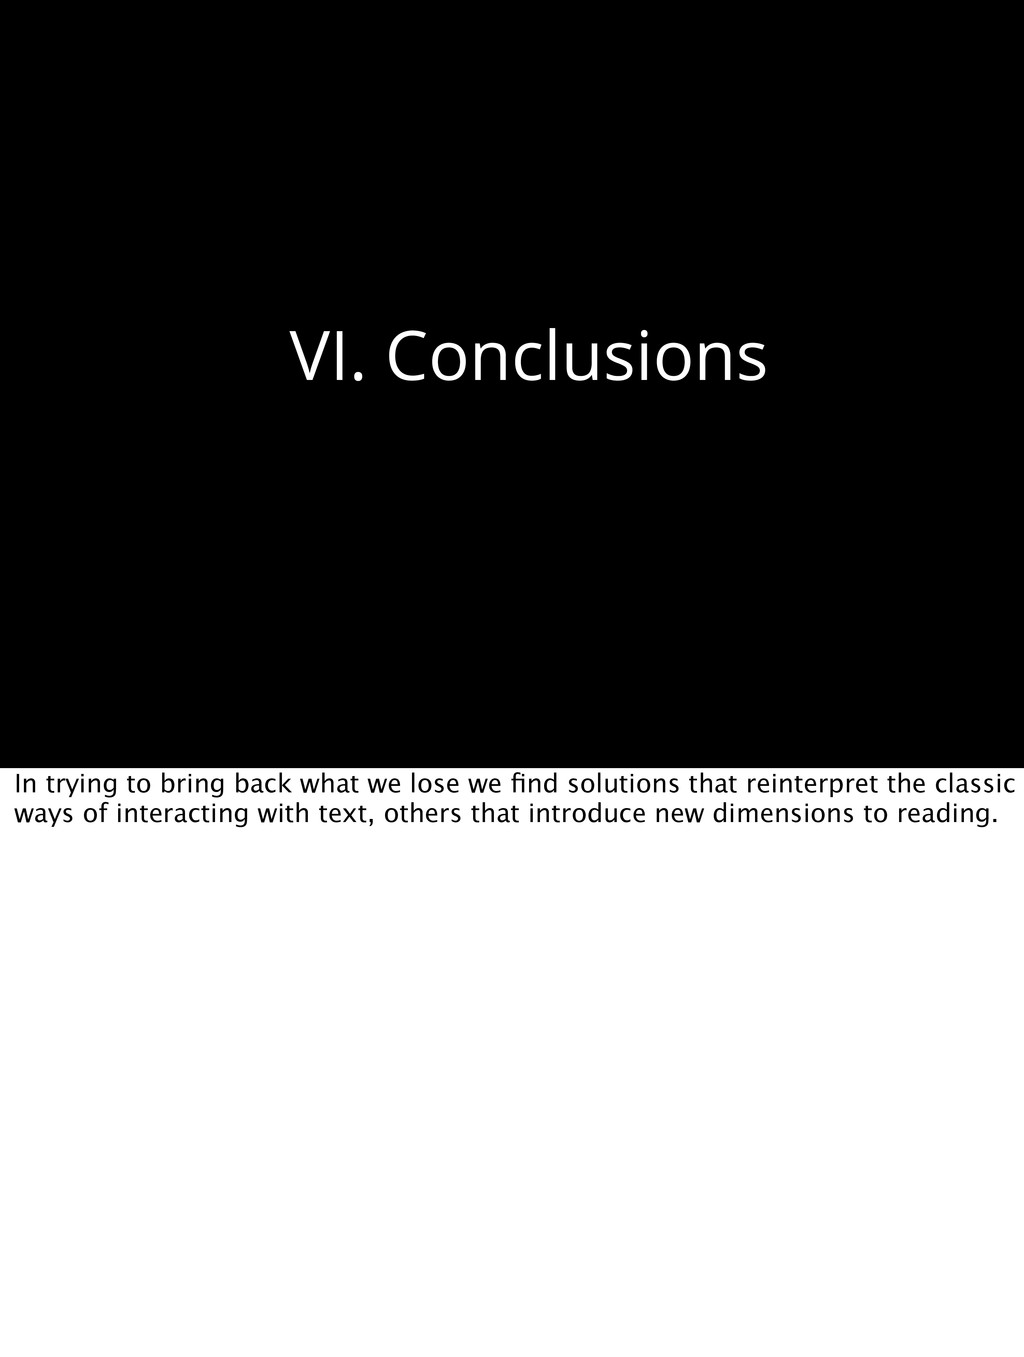 VI. Conclusions In trying to bring back what we...